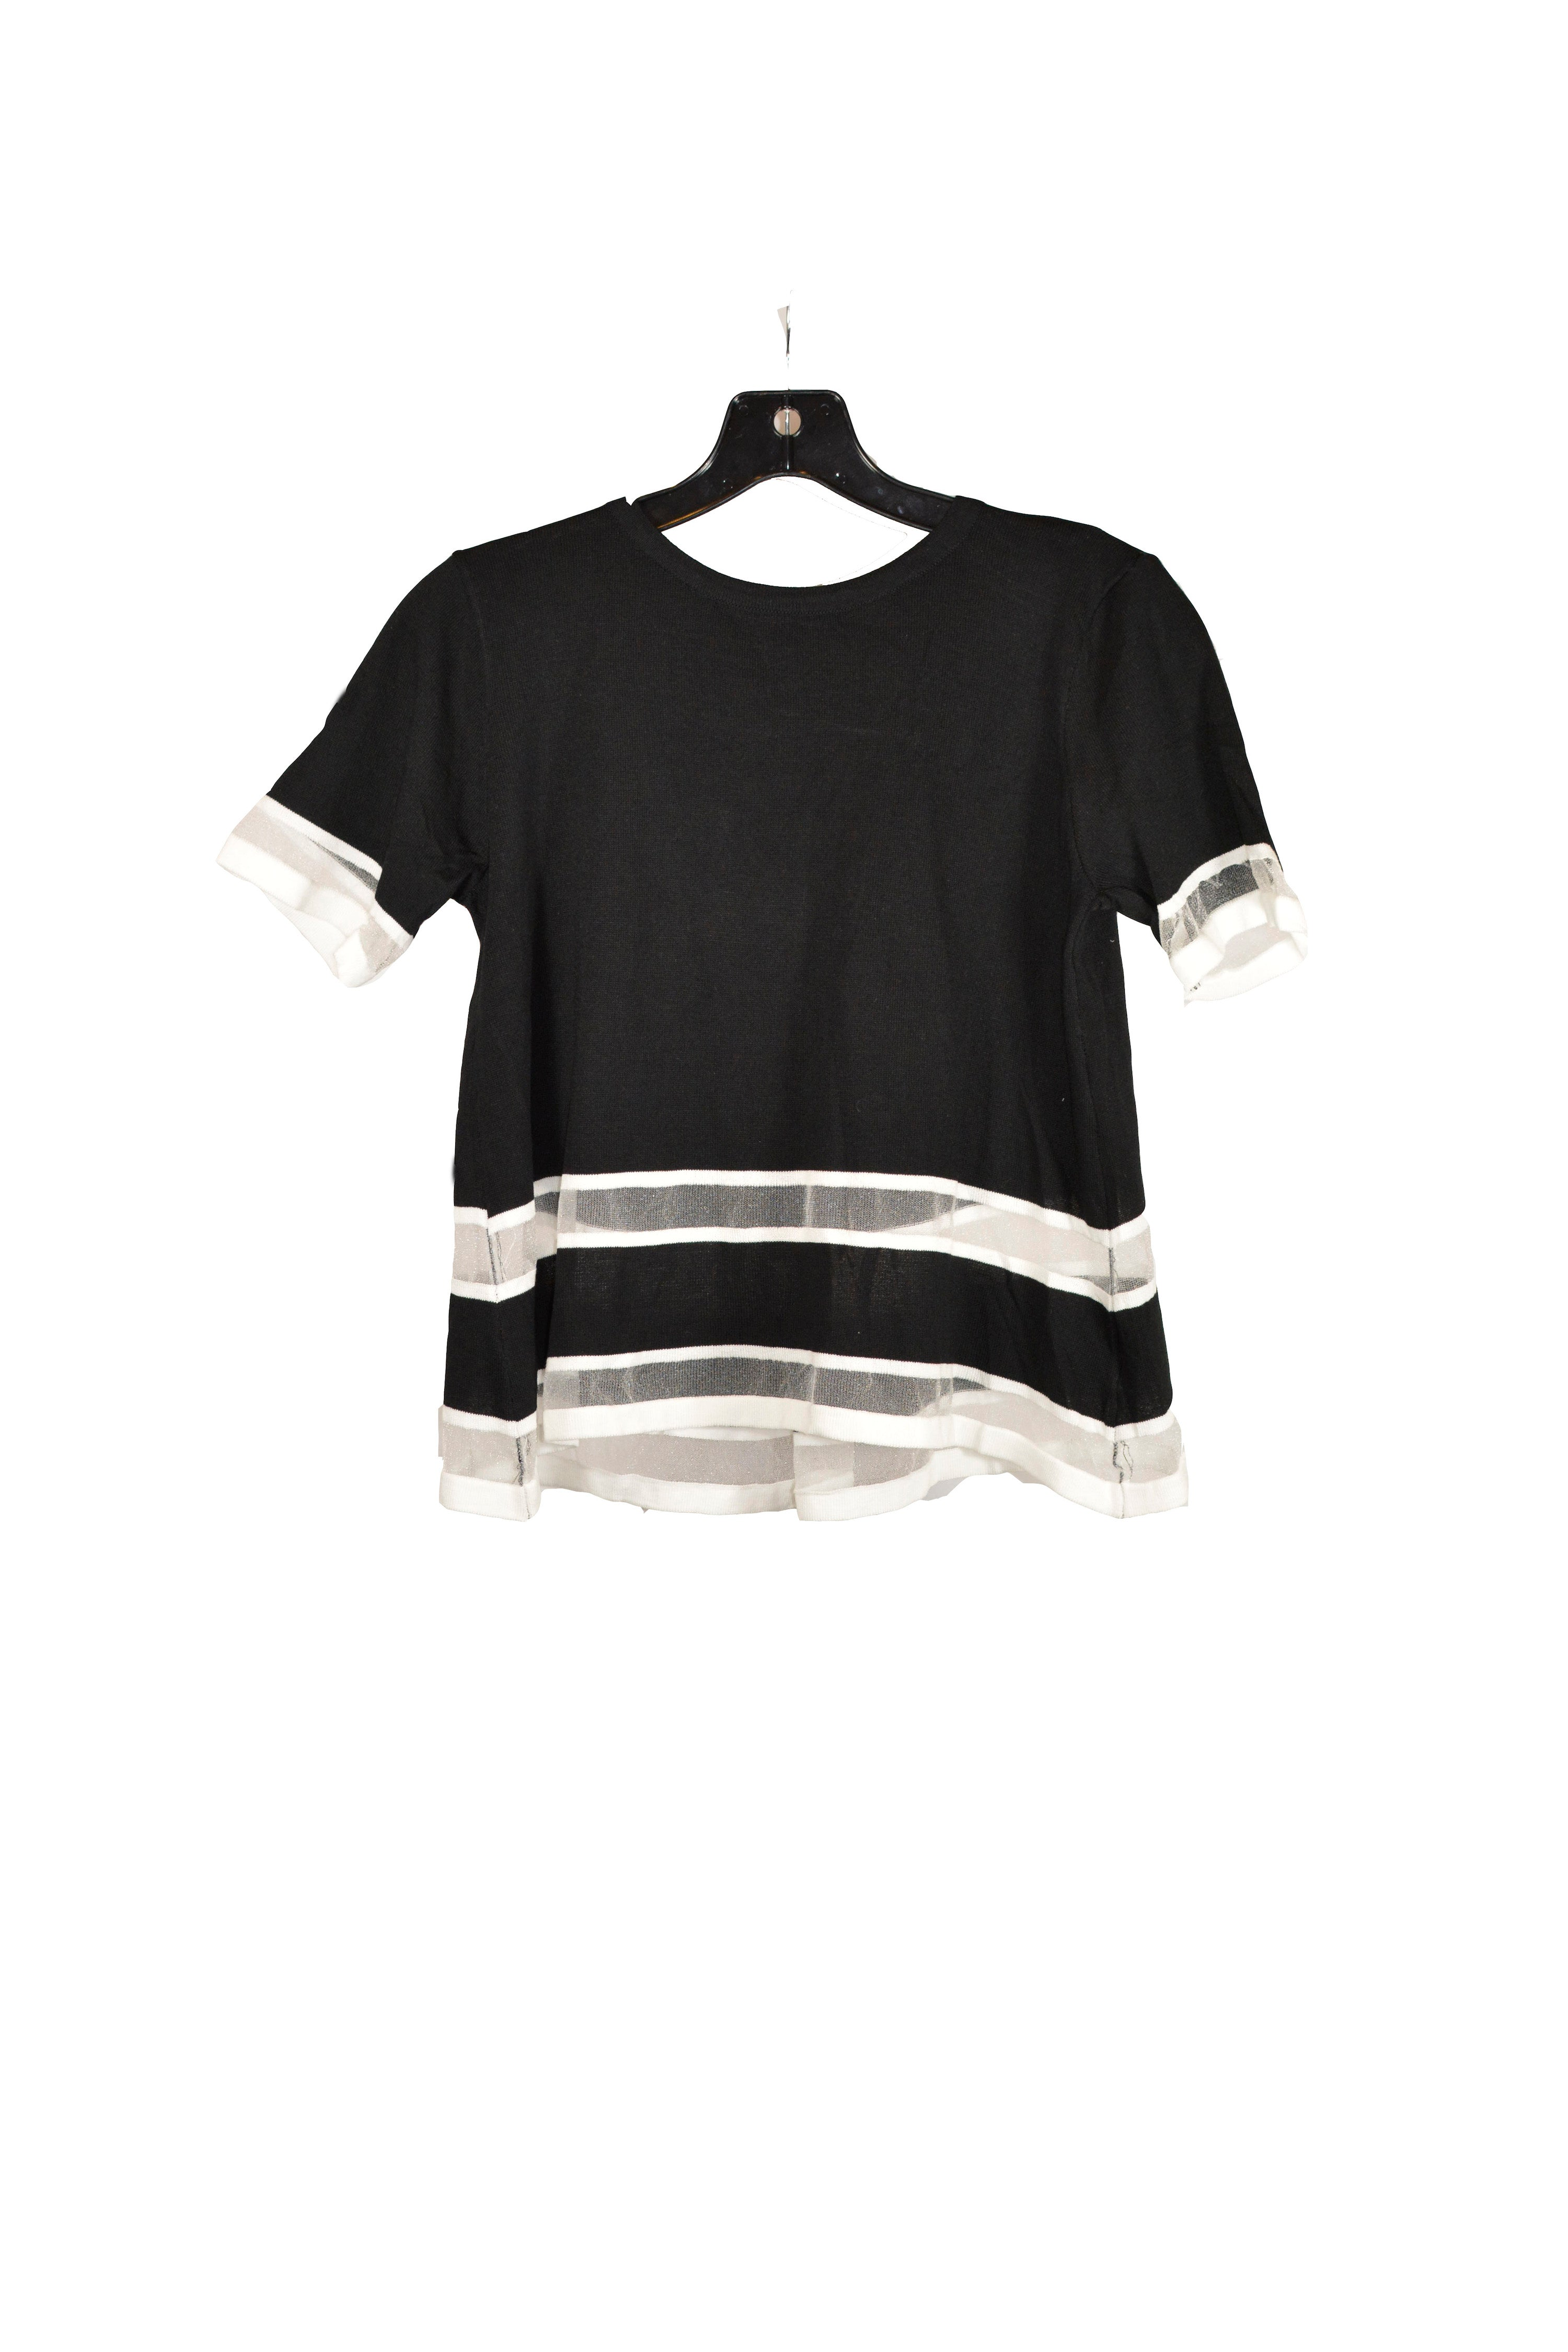 Black Short Sleeves Top With Sheer Panel With Round Neckline